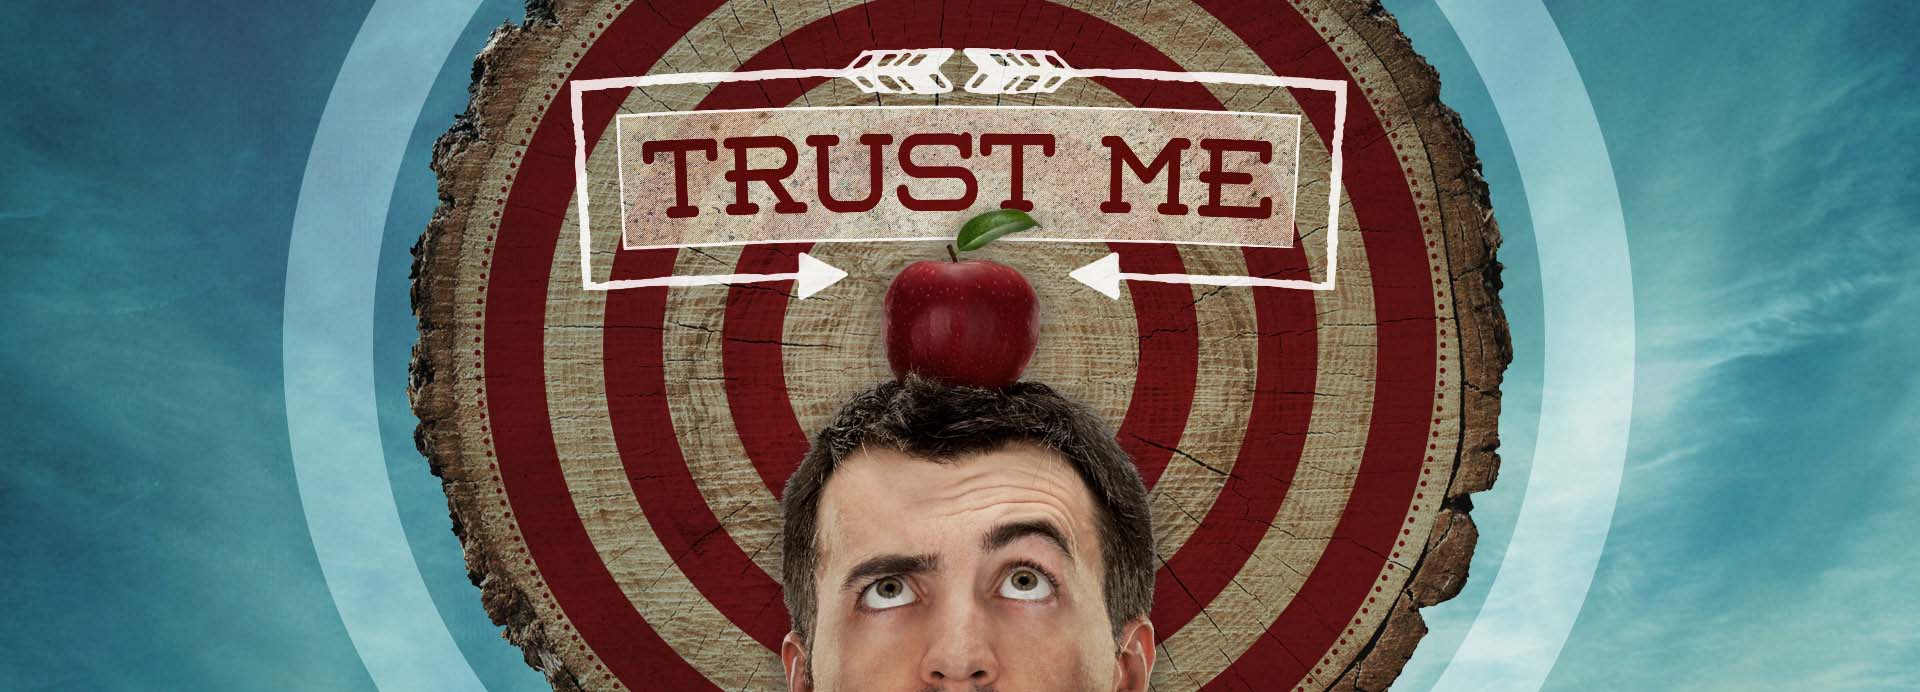 Trust Me – Week 2 – When Others Let You Down